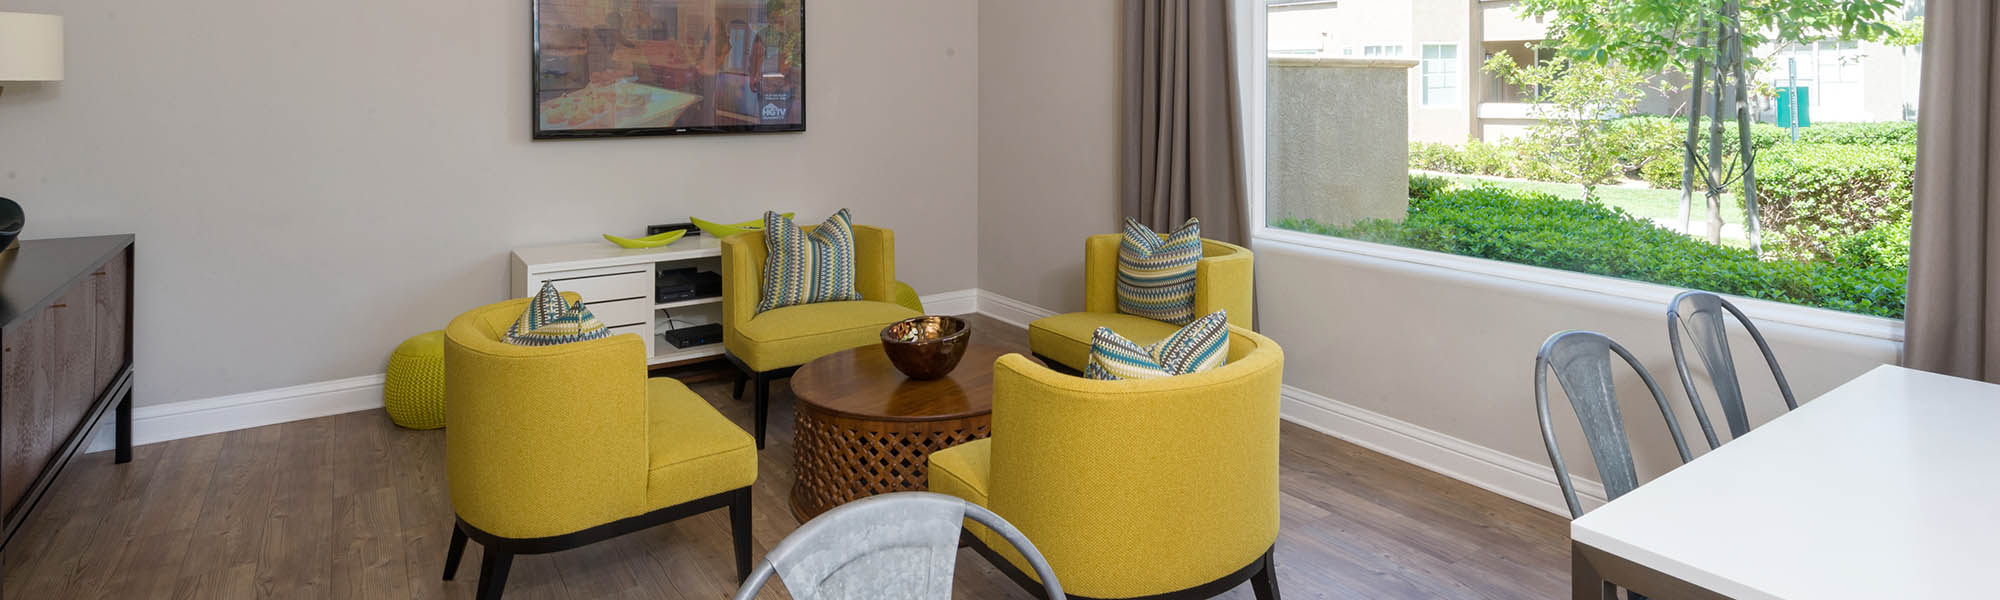 View photos of our luxurious property at The Artisan Apartment Homes in Sacramento, CA